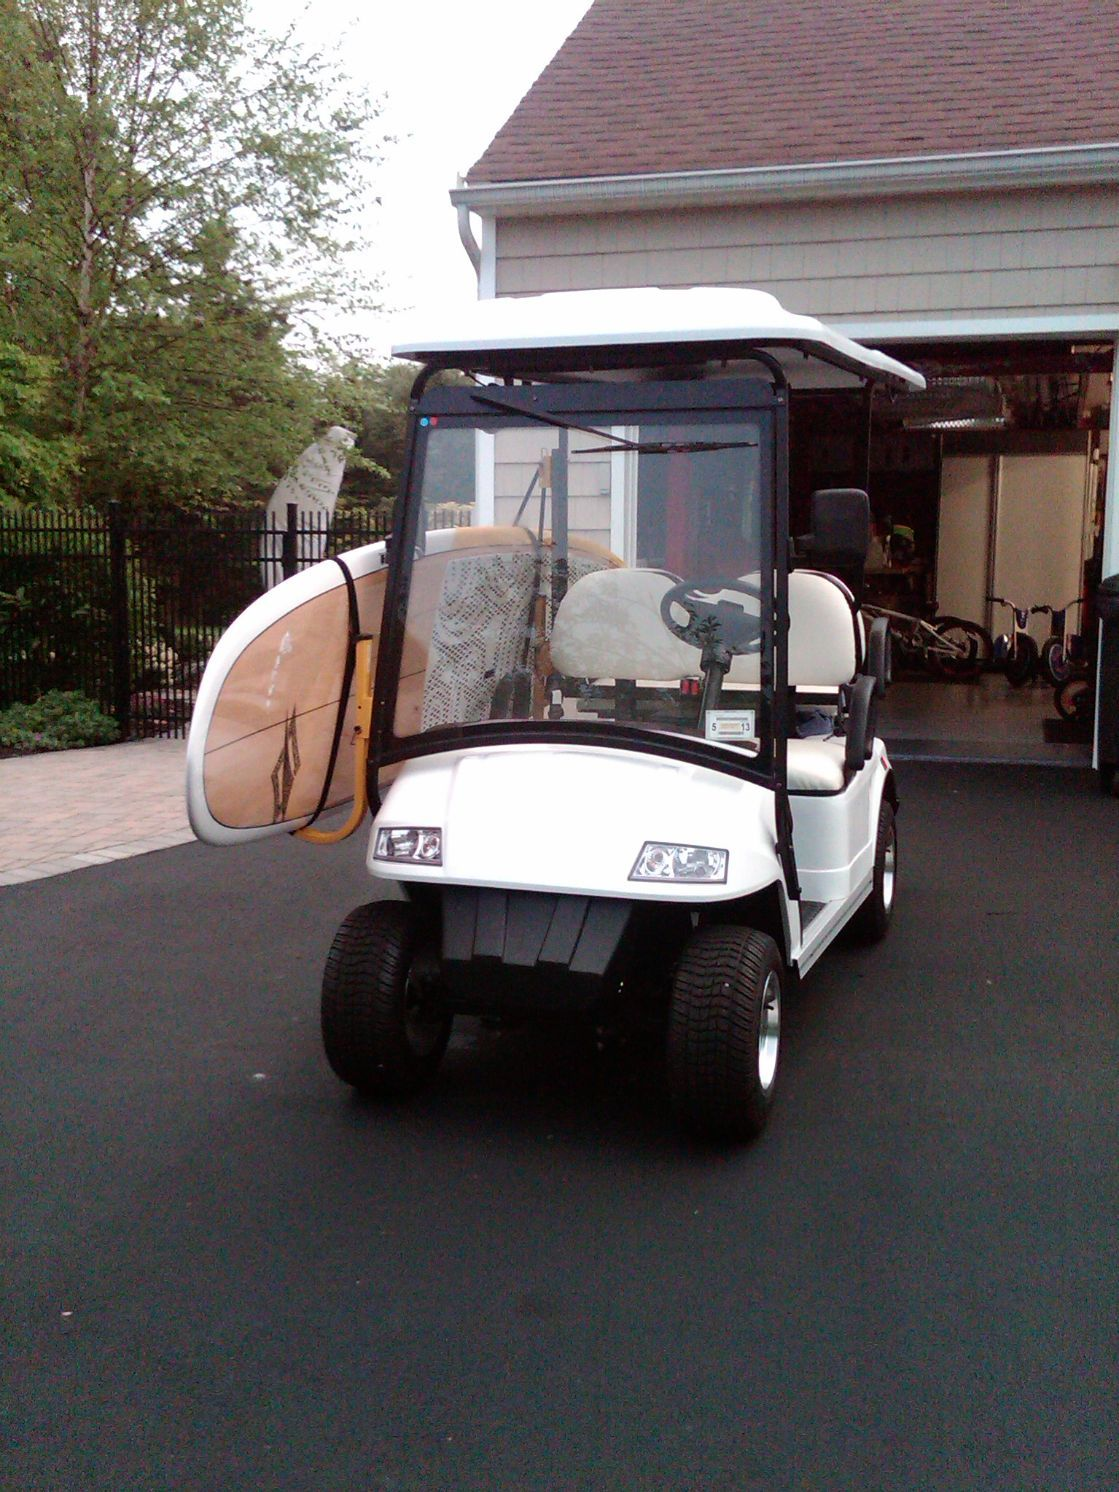 Customer Gallery | SUP racks | Pinterest | Golf carts, Paddle ... on golf cart shopping, golf cart surfing, golf cart batman, golf cart paint ideas, golf cart fishing, golf cart driver,